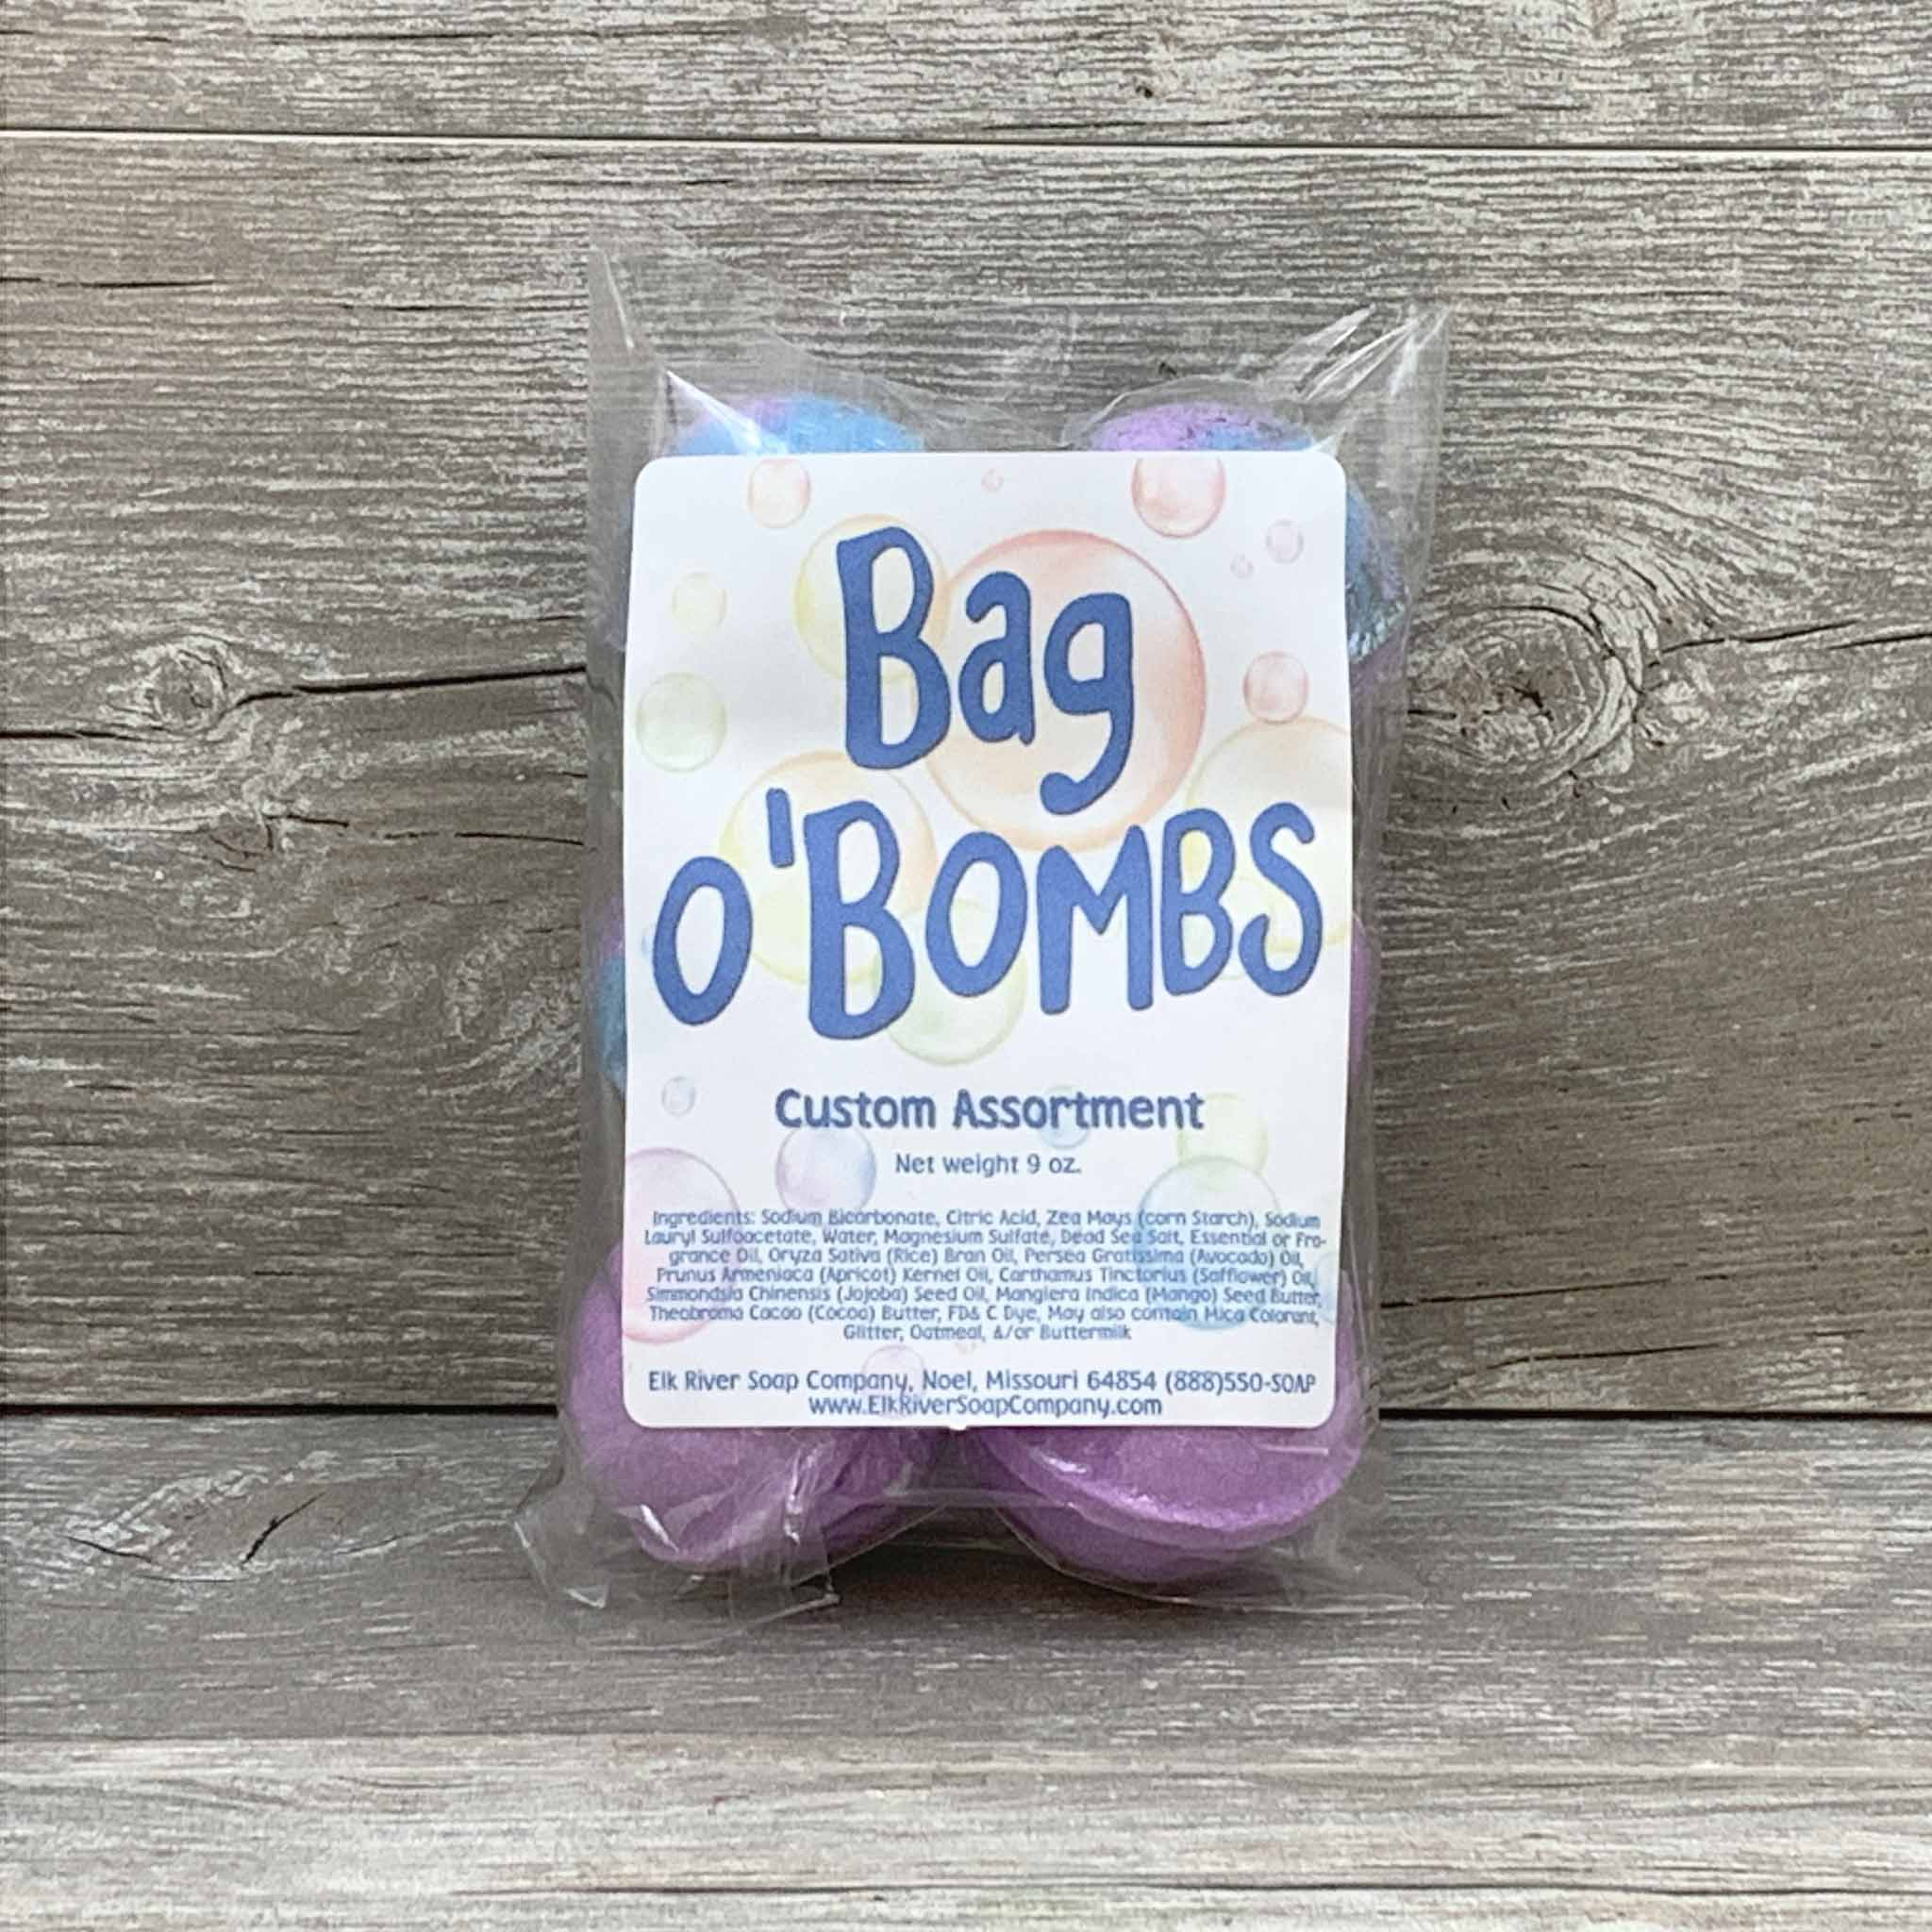 Bag O Bombs Custom Assortment Pack (MUST SELECT)